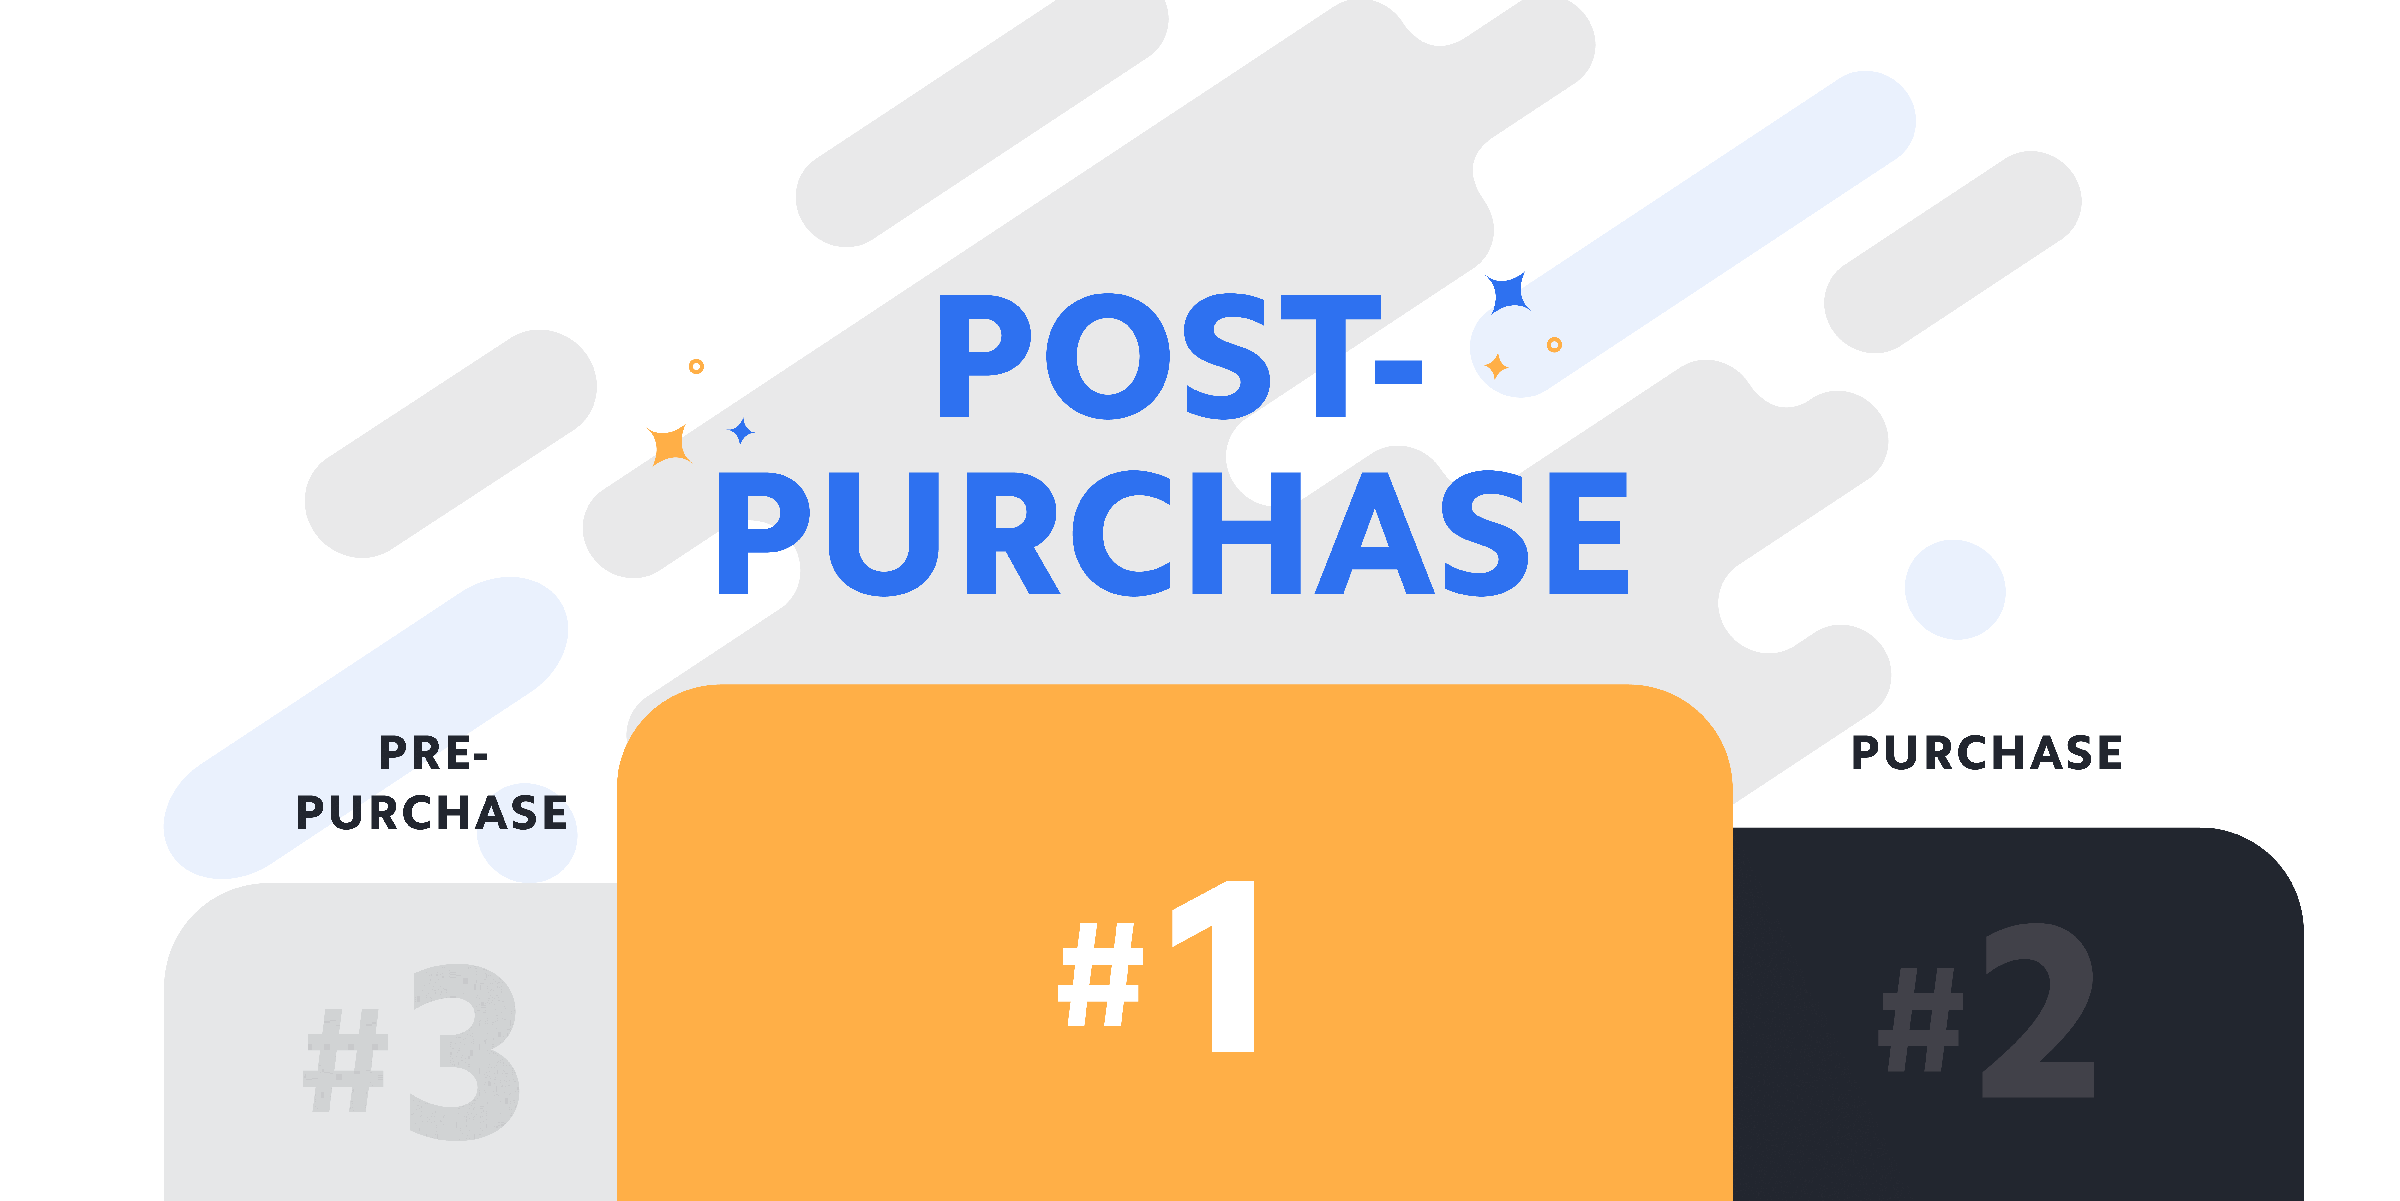 Invest on post-purchase touchpoints